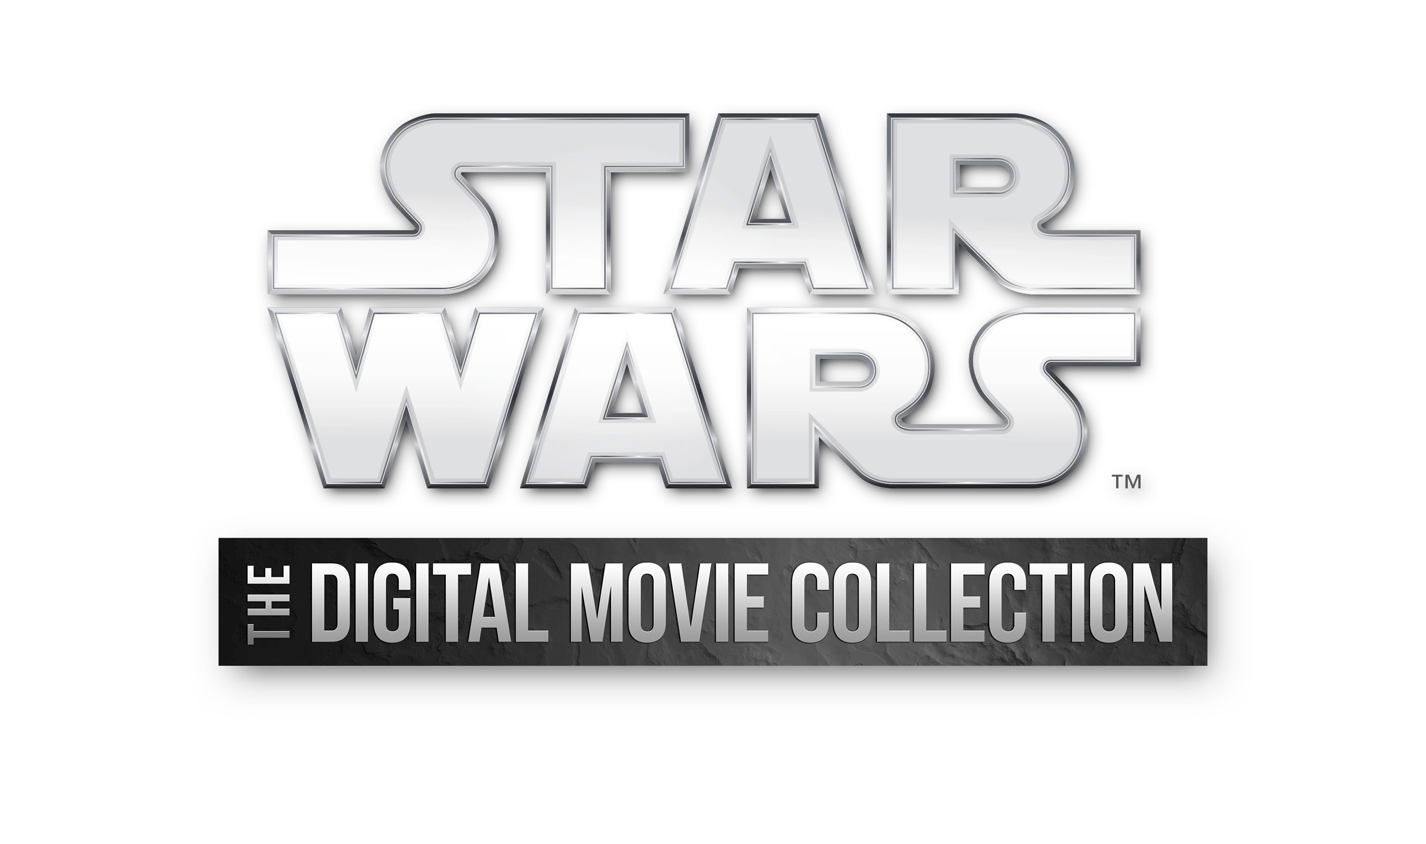 Star Wars The Digital Movie Collection